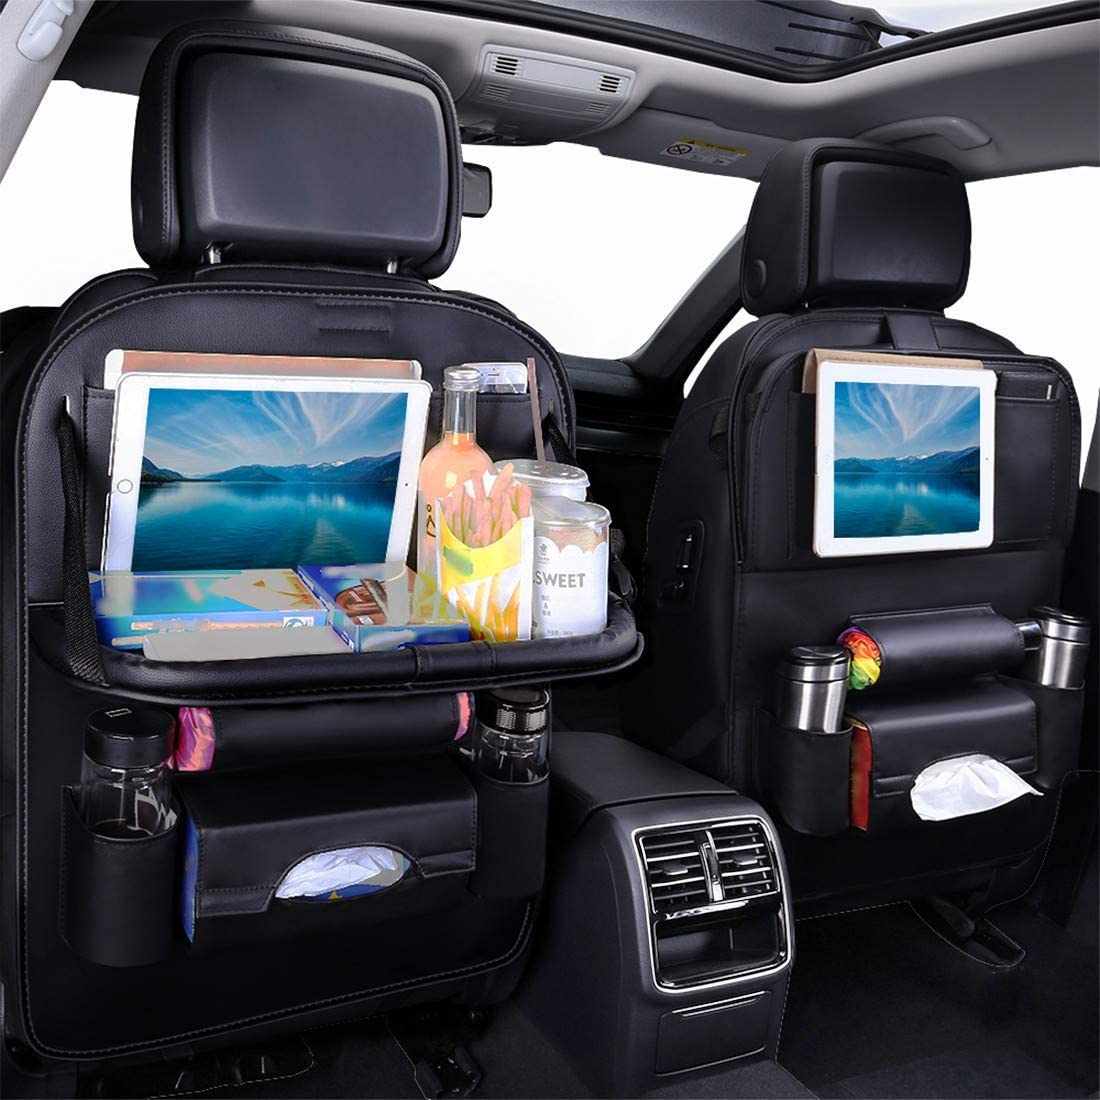 Car Seat Back Organizers with Tablet Holder for Kids Back Seat Pocket with Tray Black Backseat Organziers for Storage Pinze 1 Pack PU Leather Car Backseat Organizer with Folable Table Tray